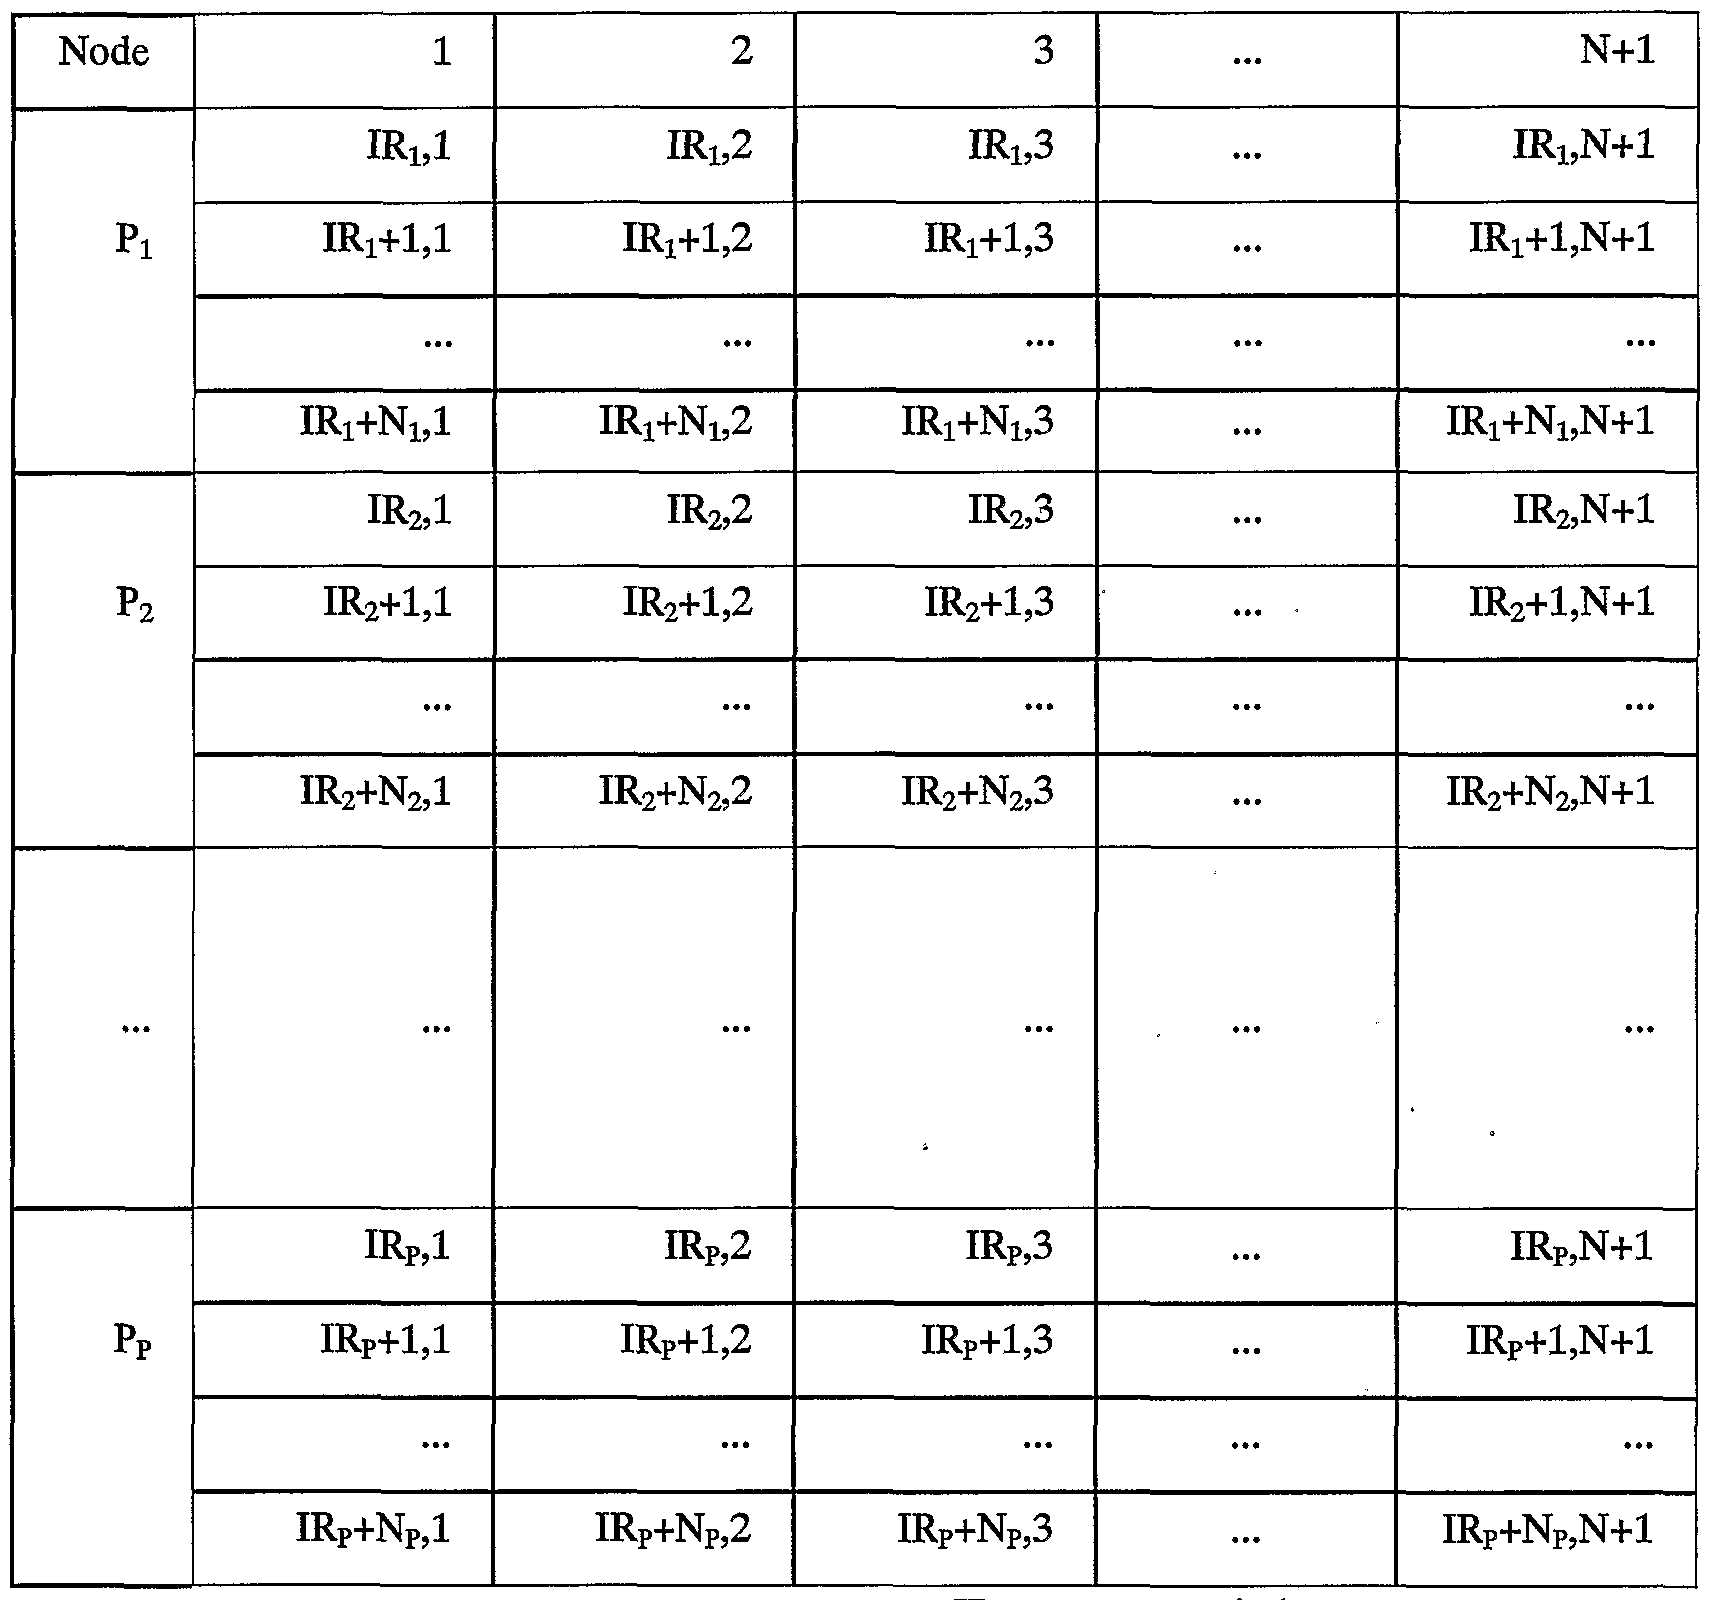 Times Table 50x50 The mapping of rows to nodes is illustrated in table ...